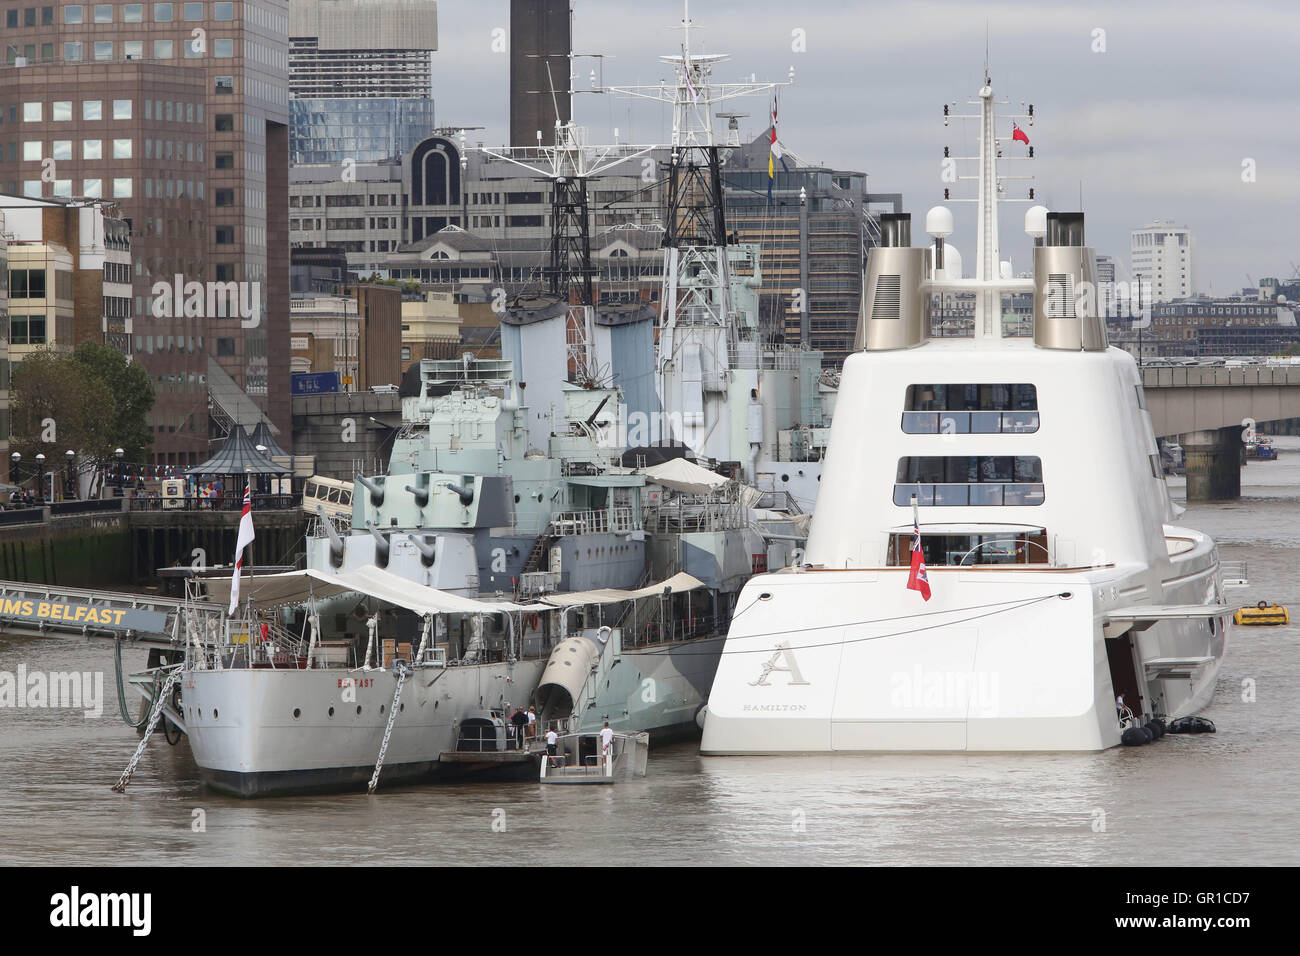 London, UK. 6th September, 2016.   Super Yacht A- owned by Russian tycoon Andrey Melnichenko, moored on The River - Stock Image